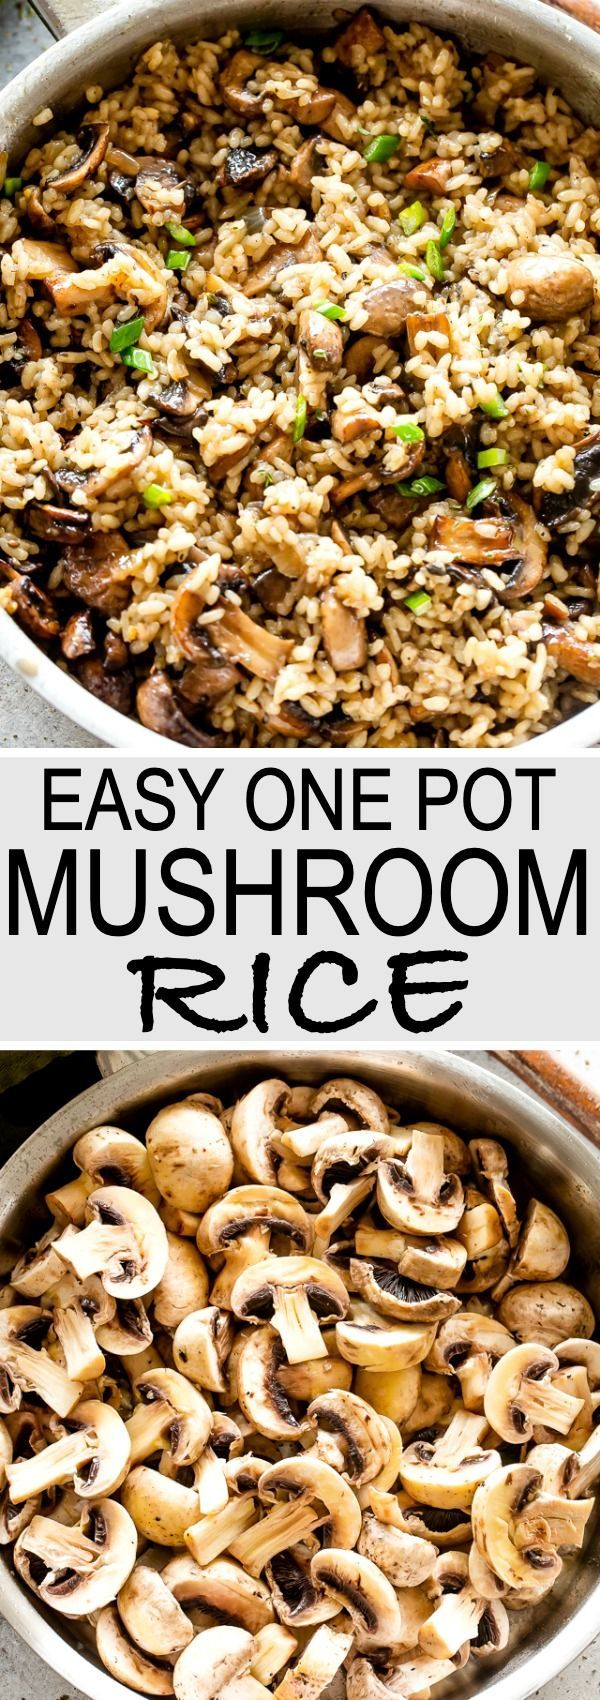 Easy One Pot Mushroom Rice  Delicious recipe for garlicky buttery rice combined with tender caramelized mushrooms A hearty comforting side dish prepared in just one pot a...